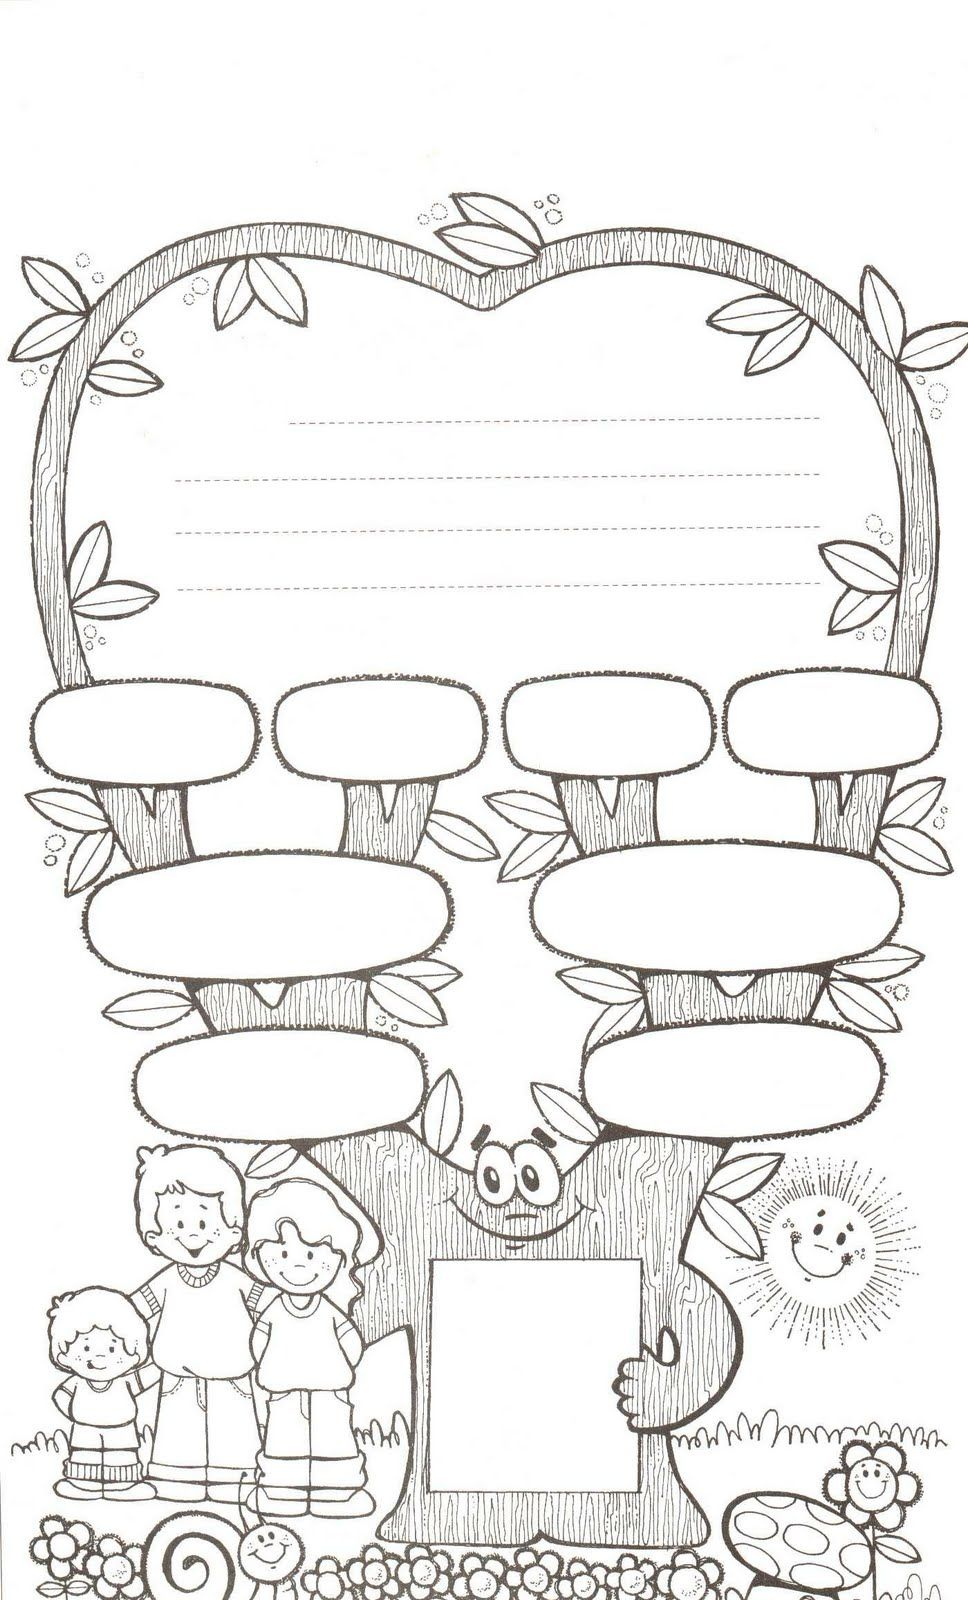 Family Tree Worksheet Printable                                                                                                                                                                                 More